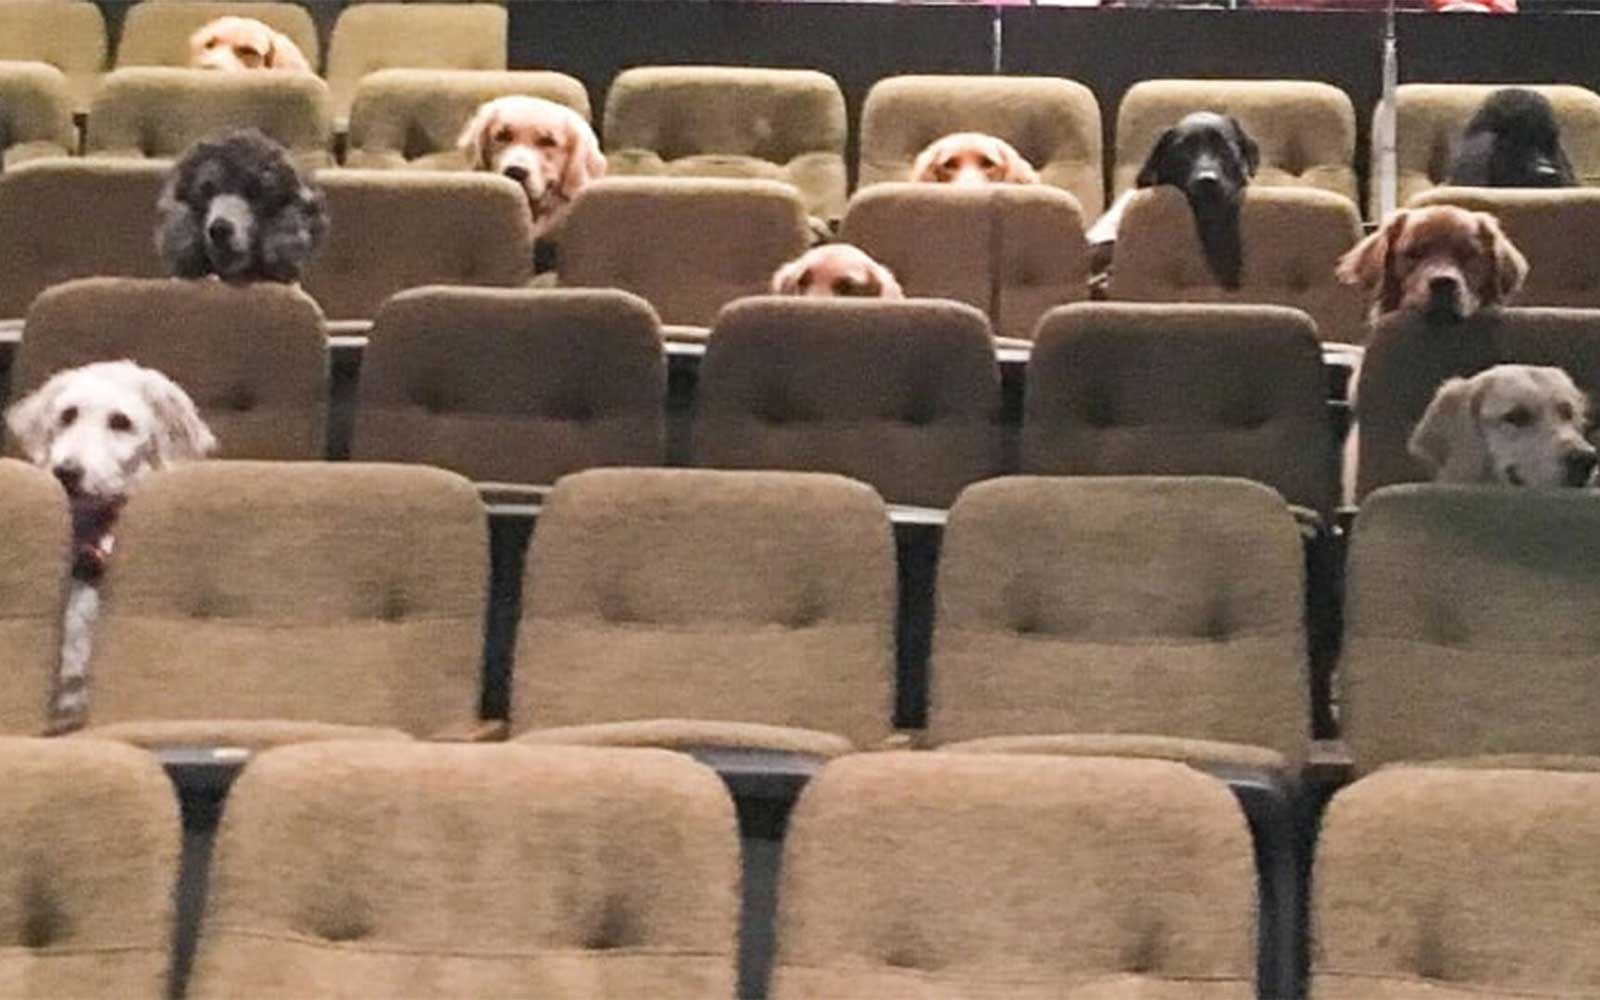 K-9 Country Inn service dogs sitting in a theatre